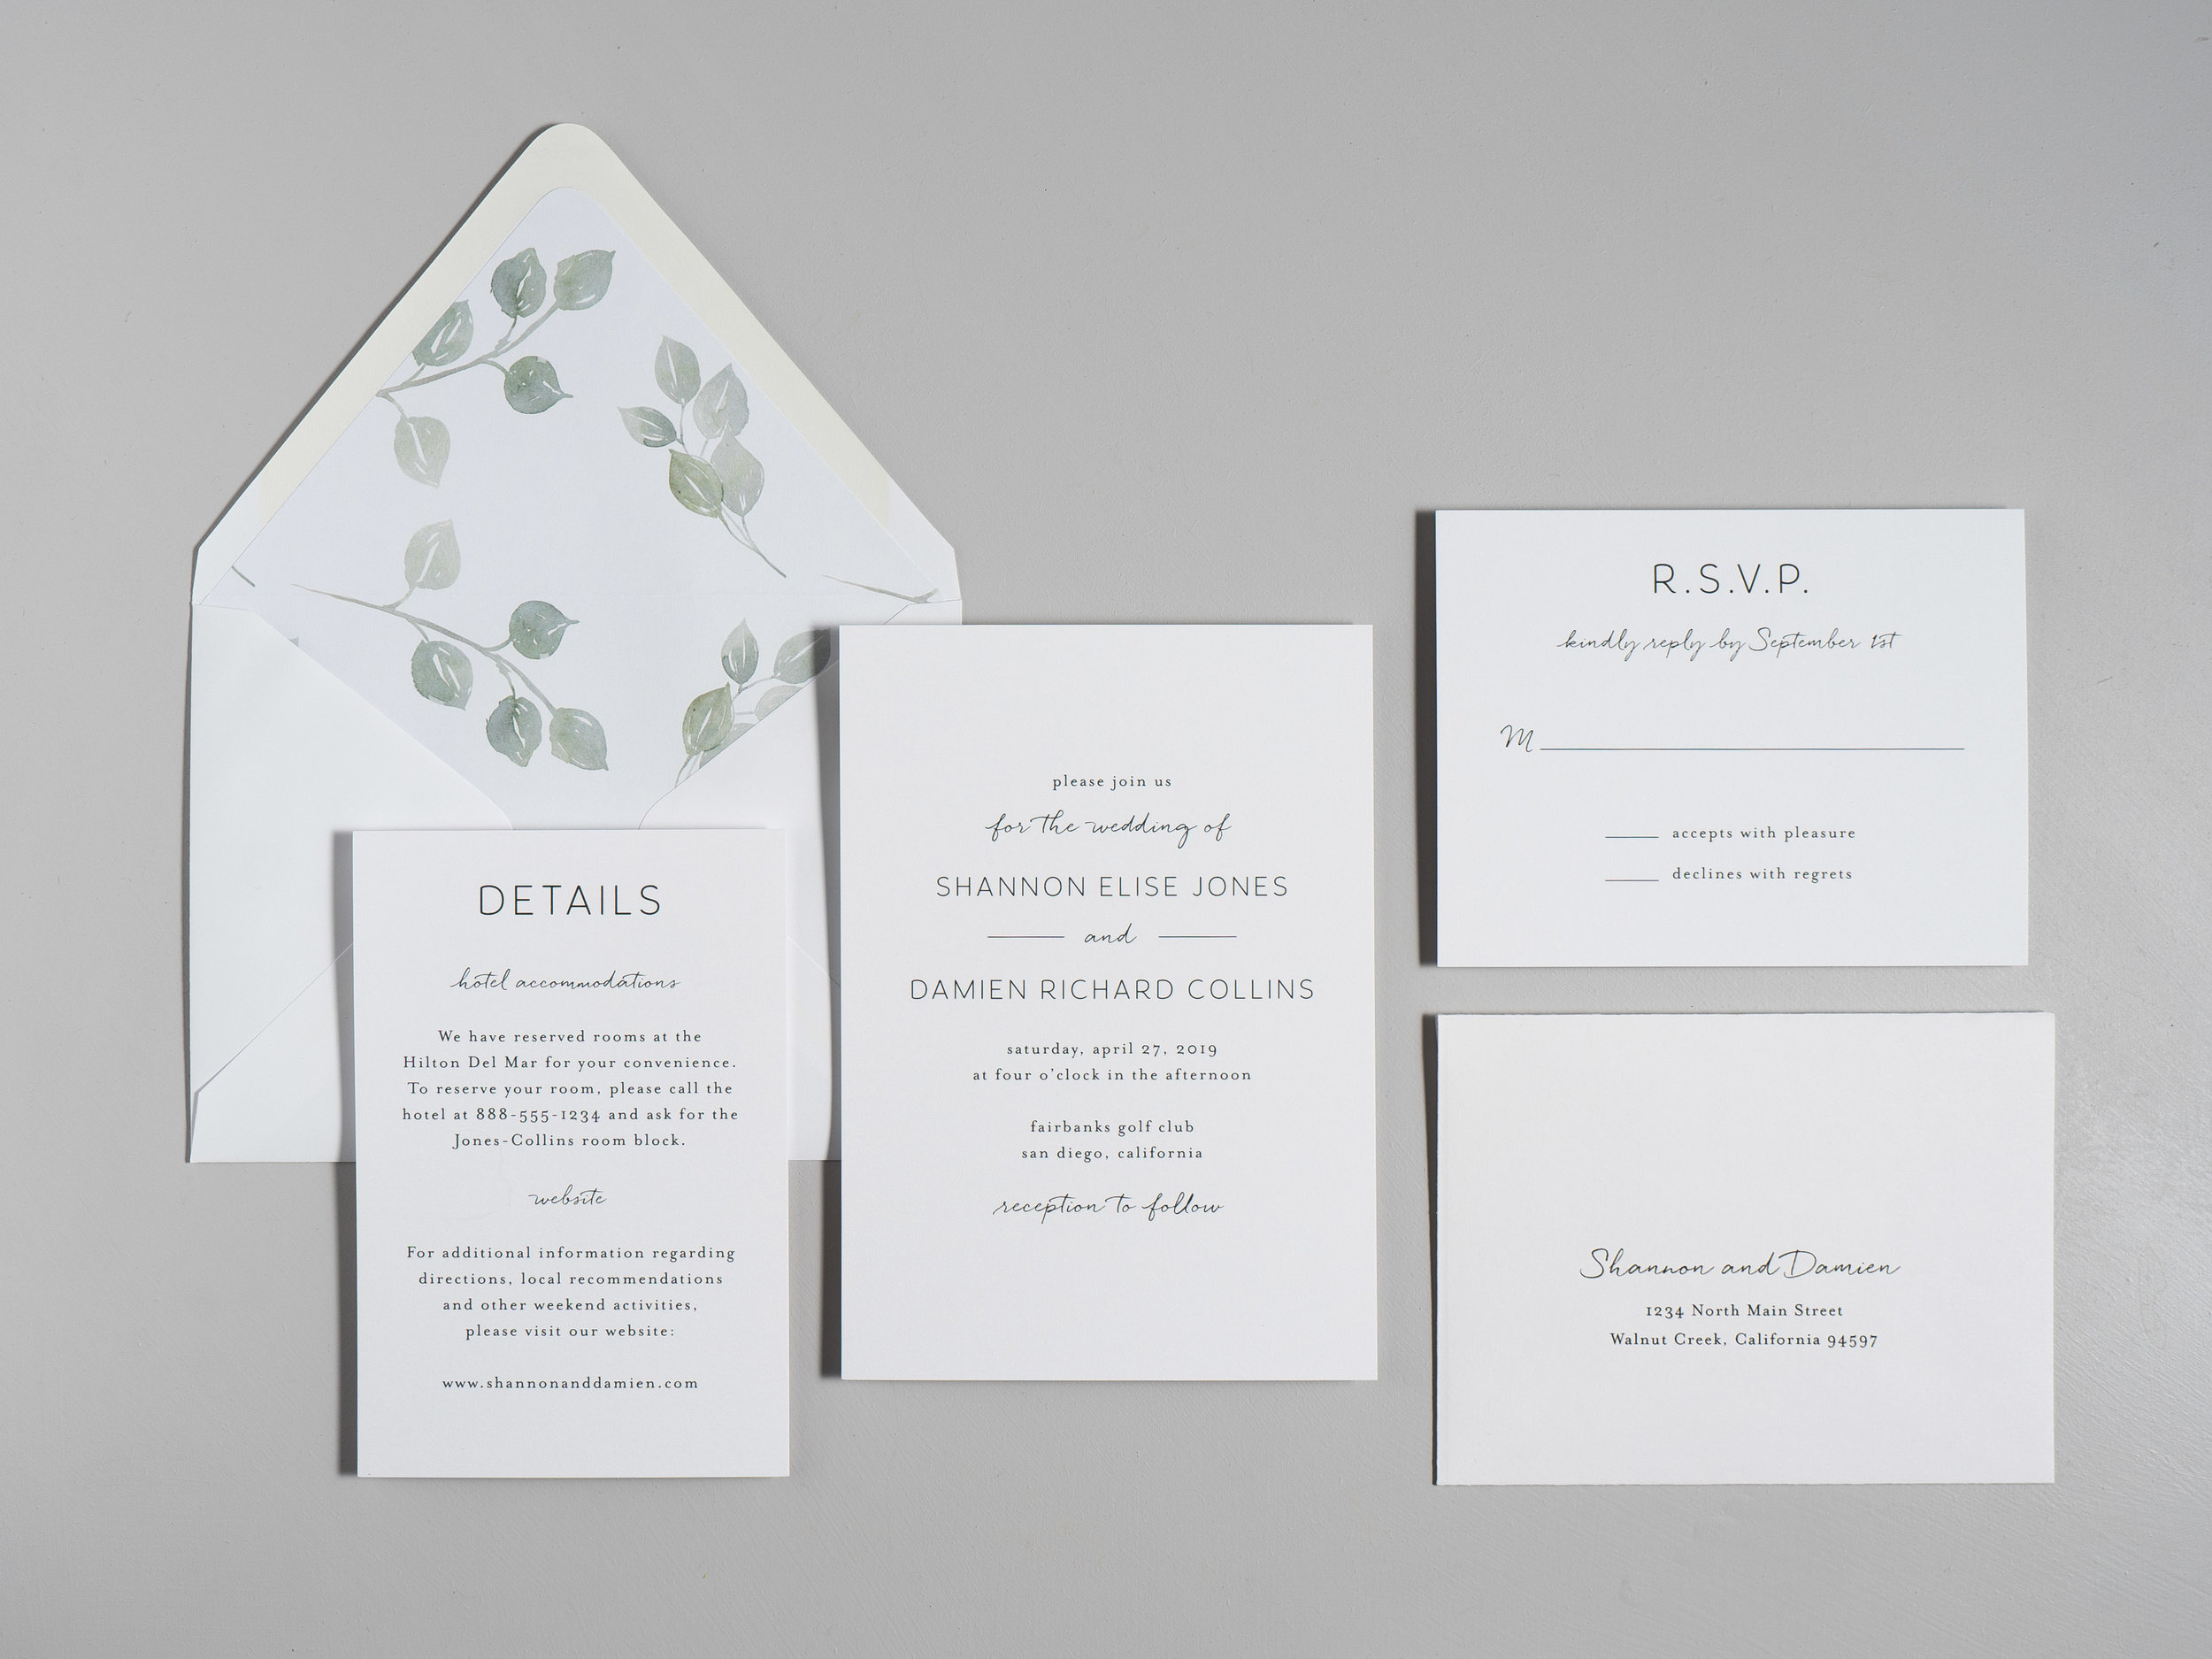 Eucalyptus Minimalist V2 Wedding Invitations by Just Jurf-1.jpg